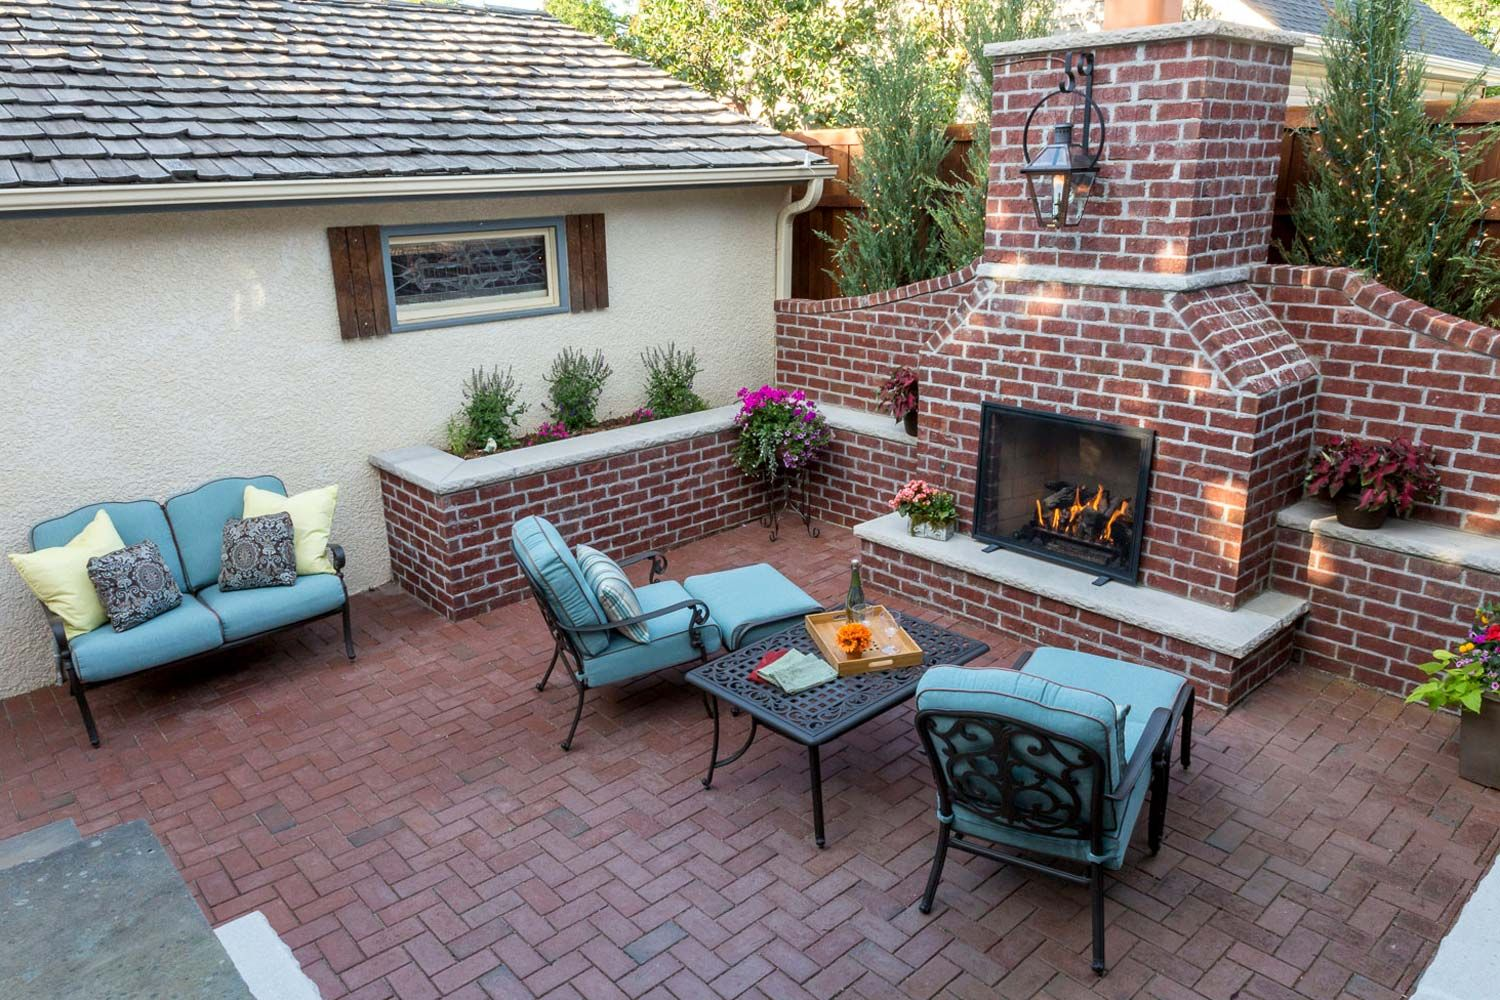 Red Brick Herringbone Paver Patio In St Paul Lights In Trees Behind Fireplace Outdoor Fireplace Patio Backyard Patio Concrete Backyard